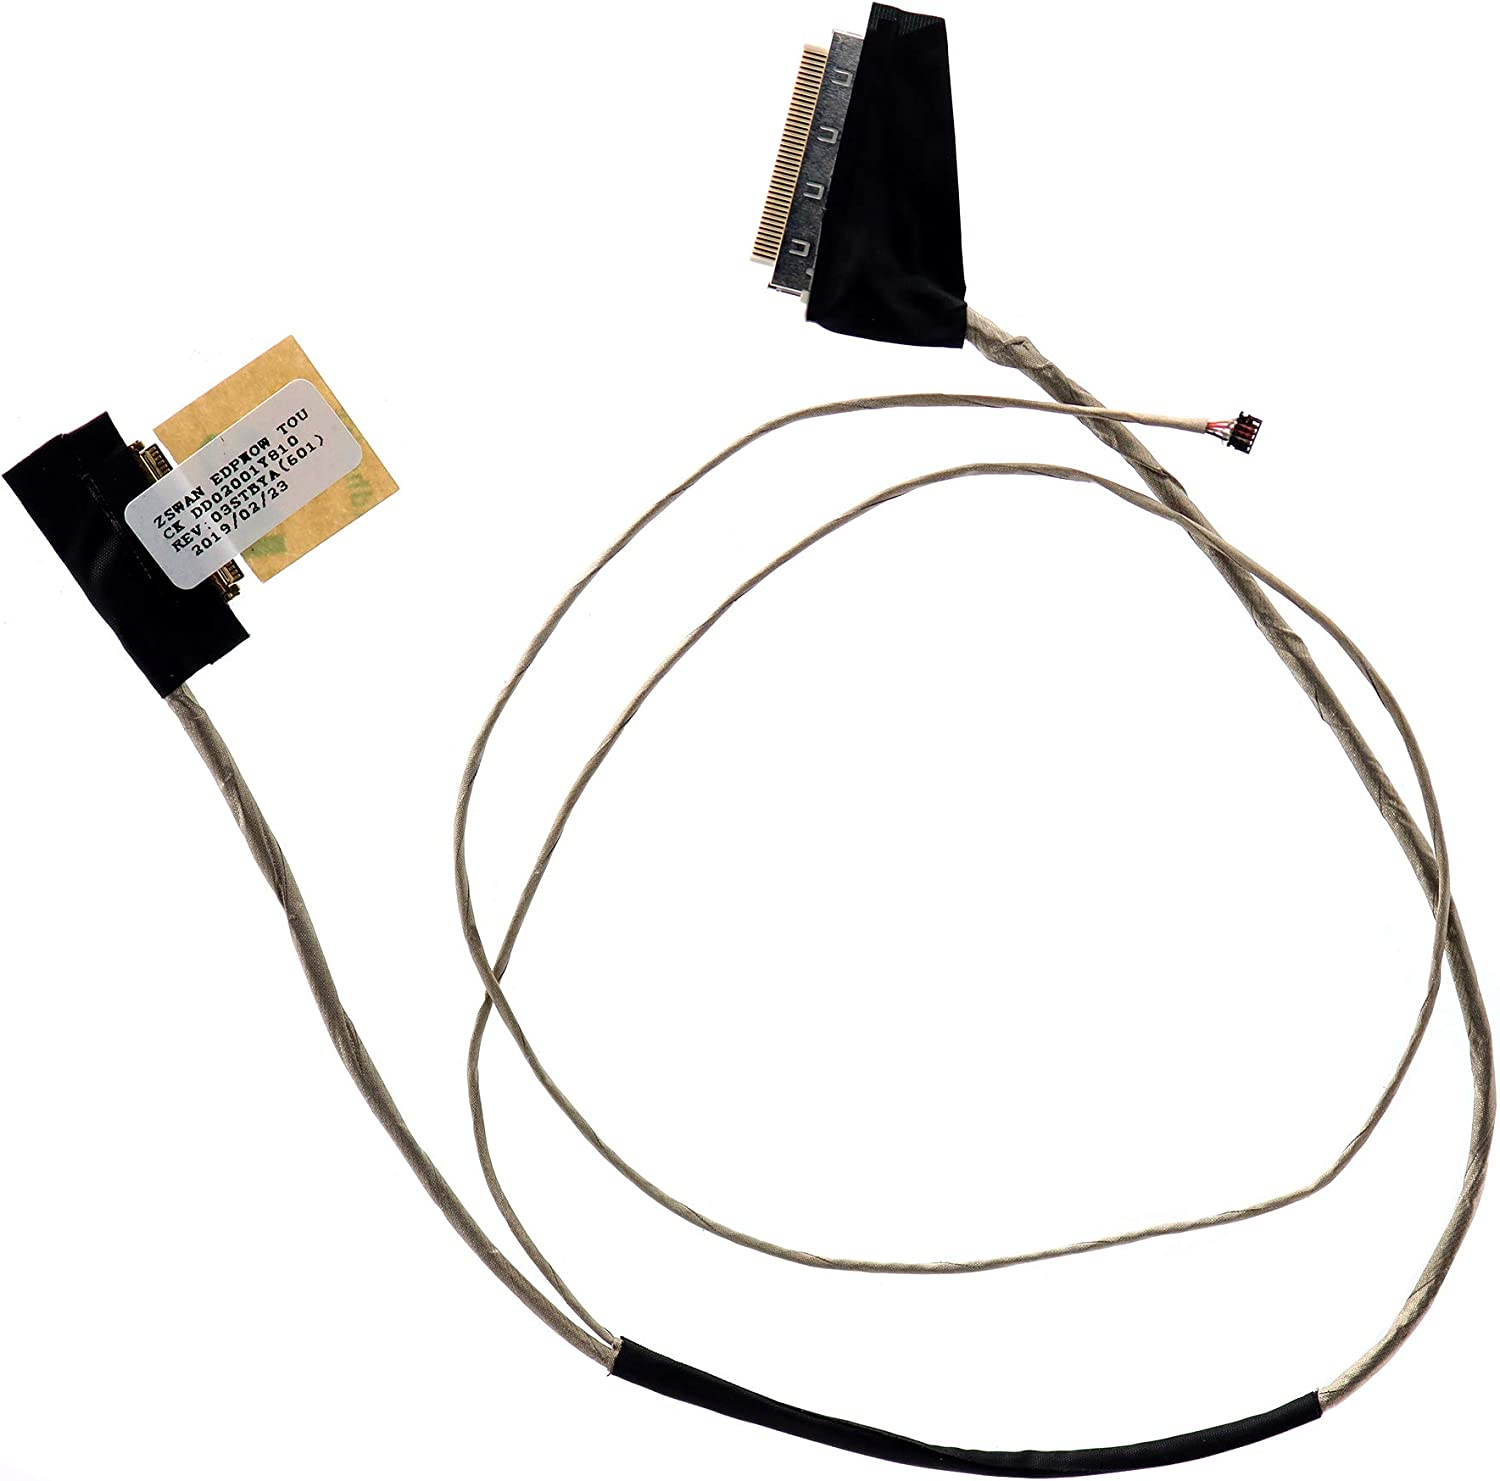 Deal4GO LCD Lvds Cable eDP Flex Cable for Acer Aspire E5-571 E5-571G E5-551 E5-531 E5-521 E5-511 V3-572 V5-572 TravelMate P256-M P256-MG DC02001Y910